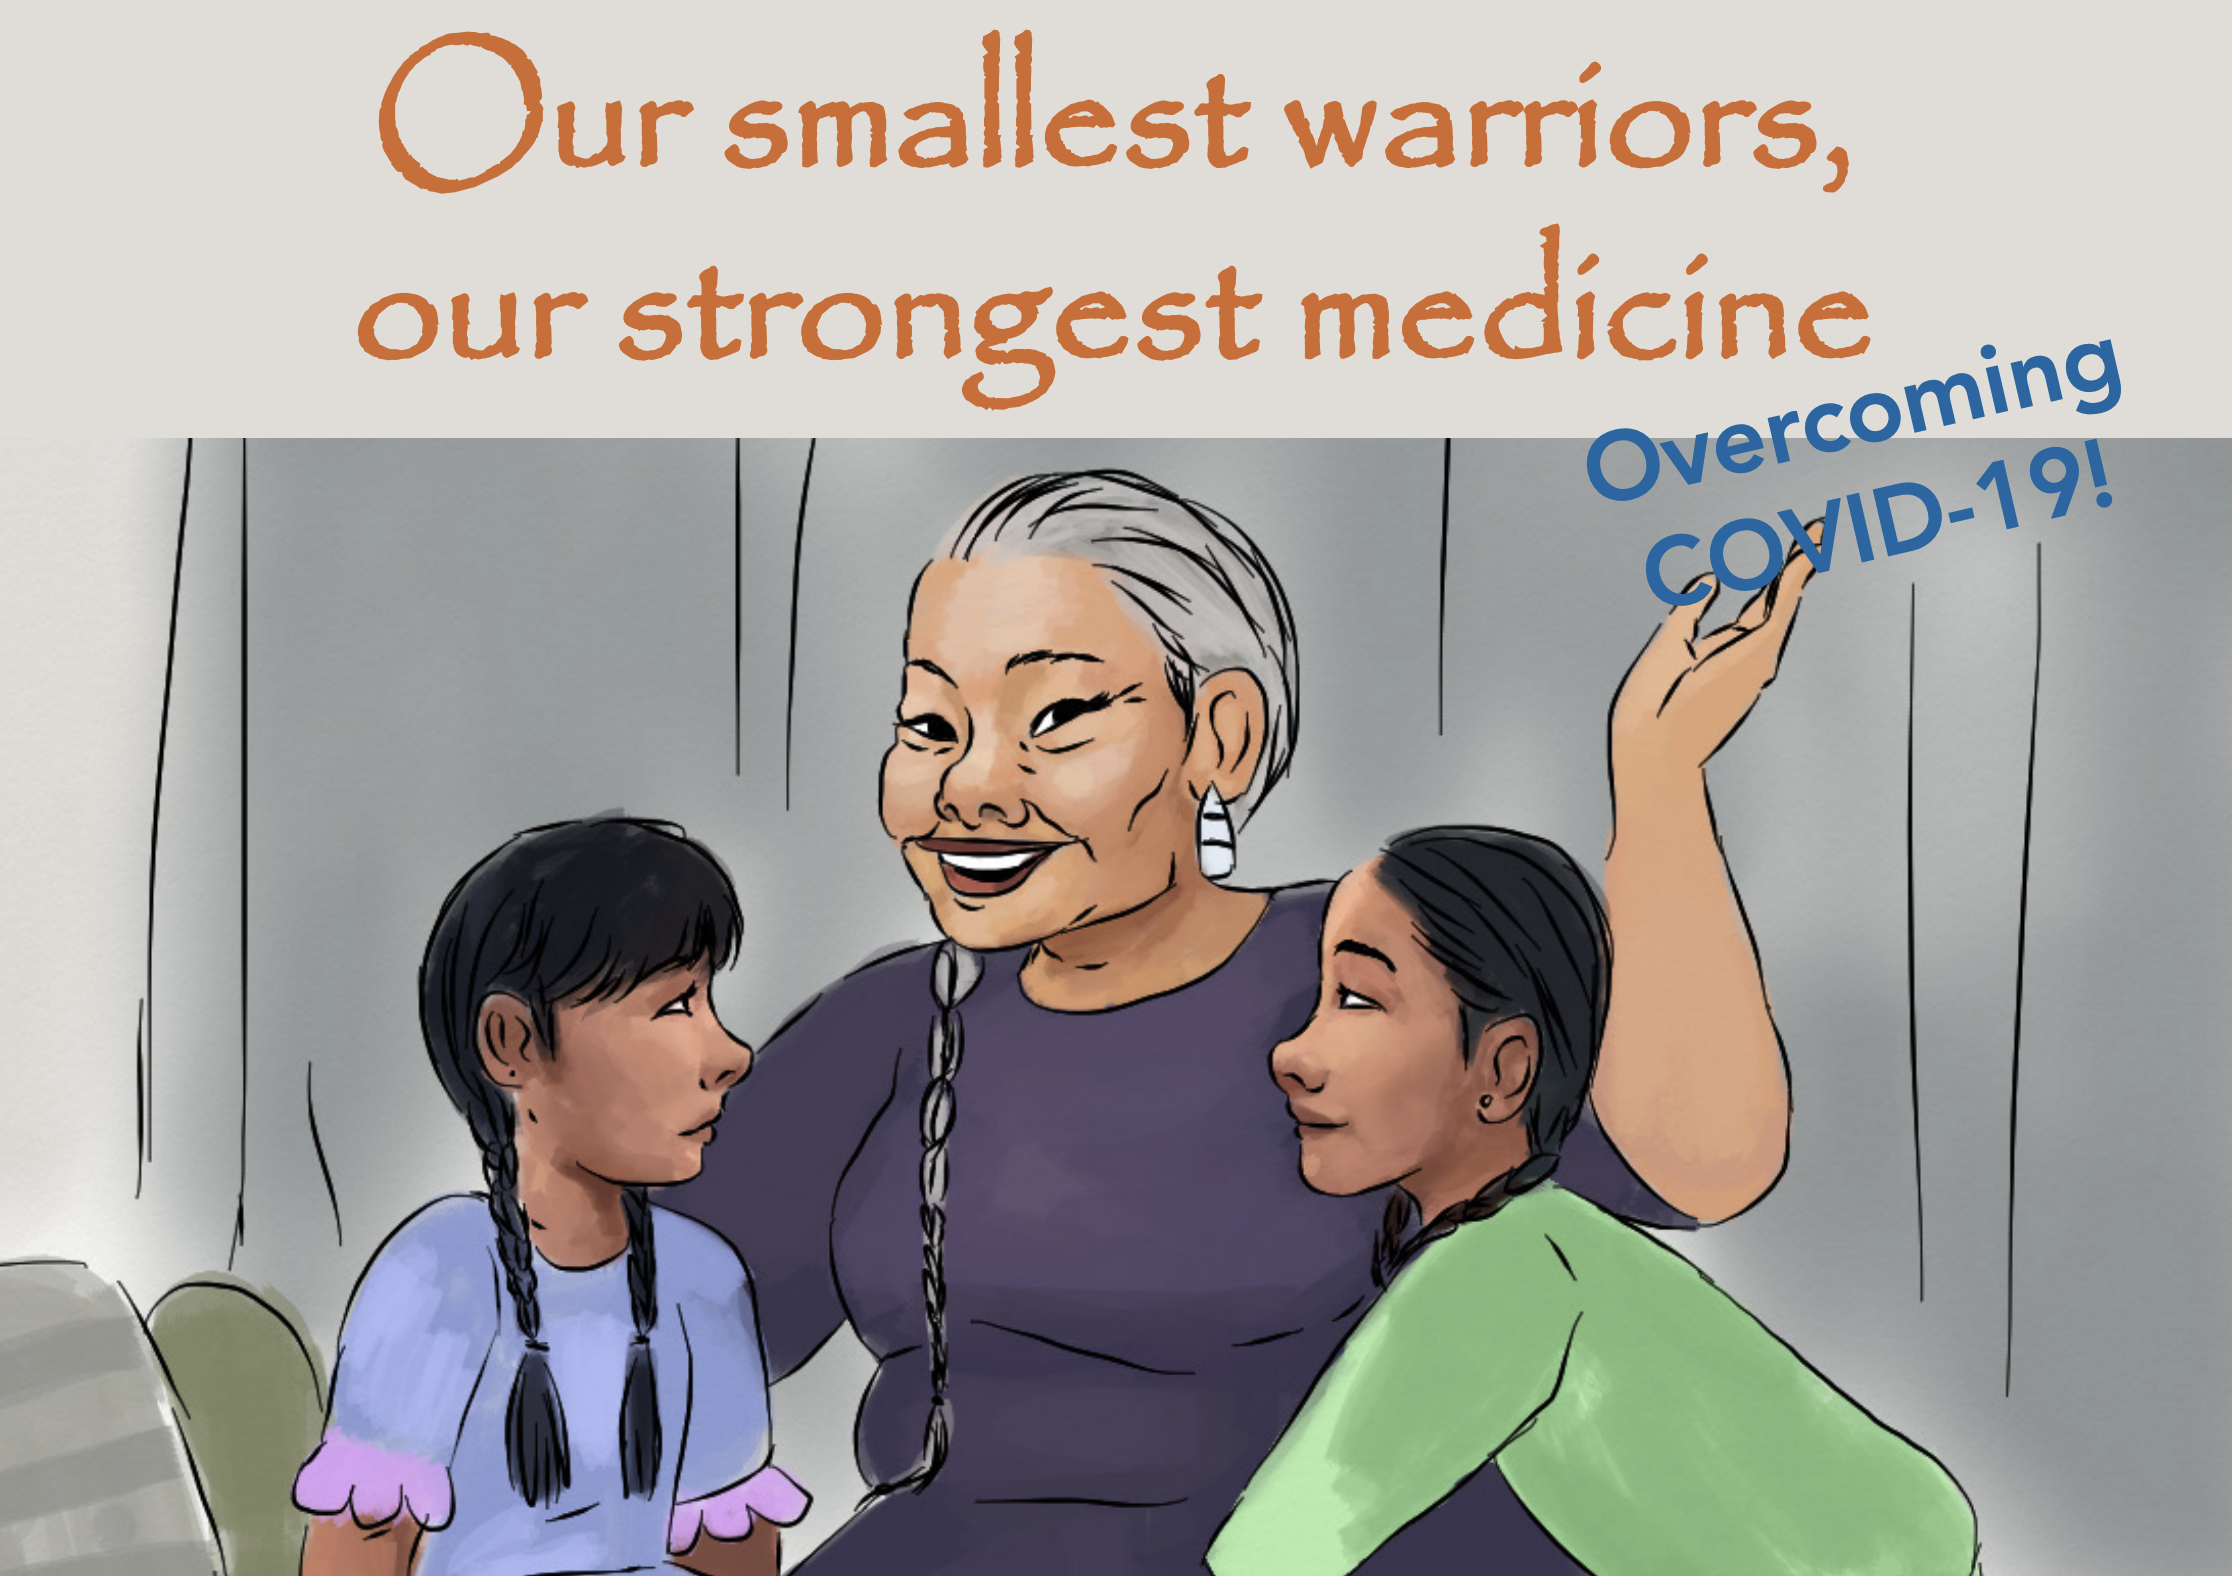 Our smallest warriors, our strongest medicine: Overcoming COVID-19!